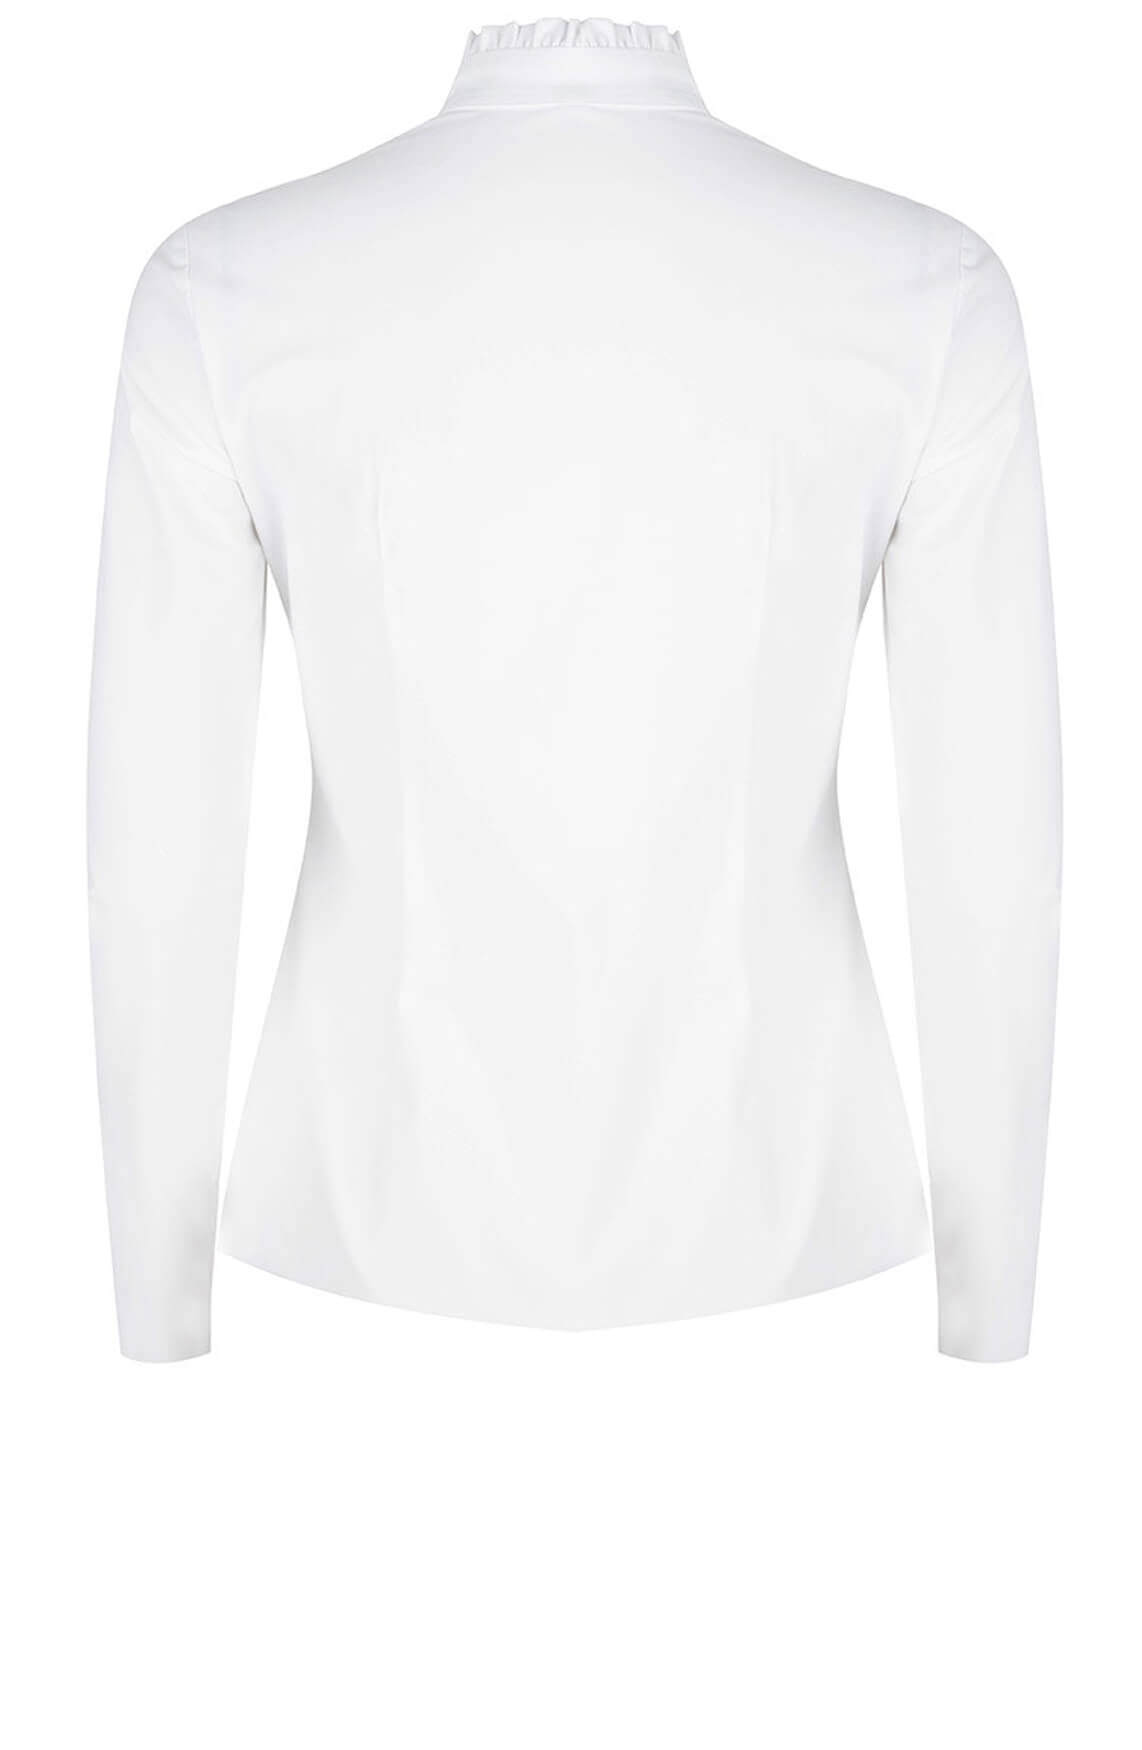 Jane Lushka Dames Jersey blouse met ruches wit